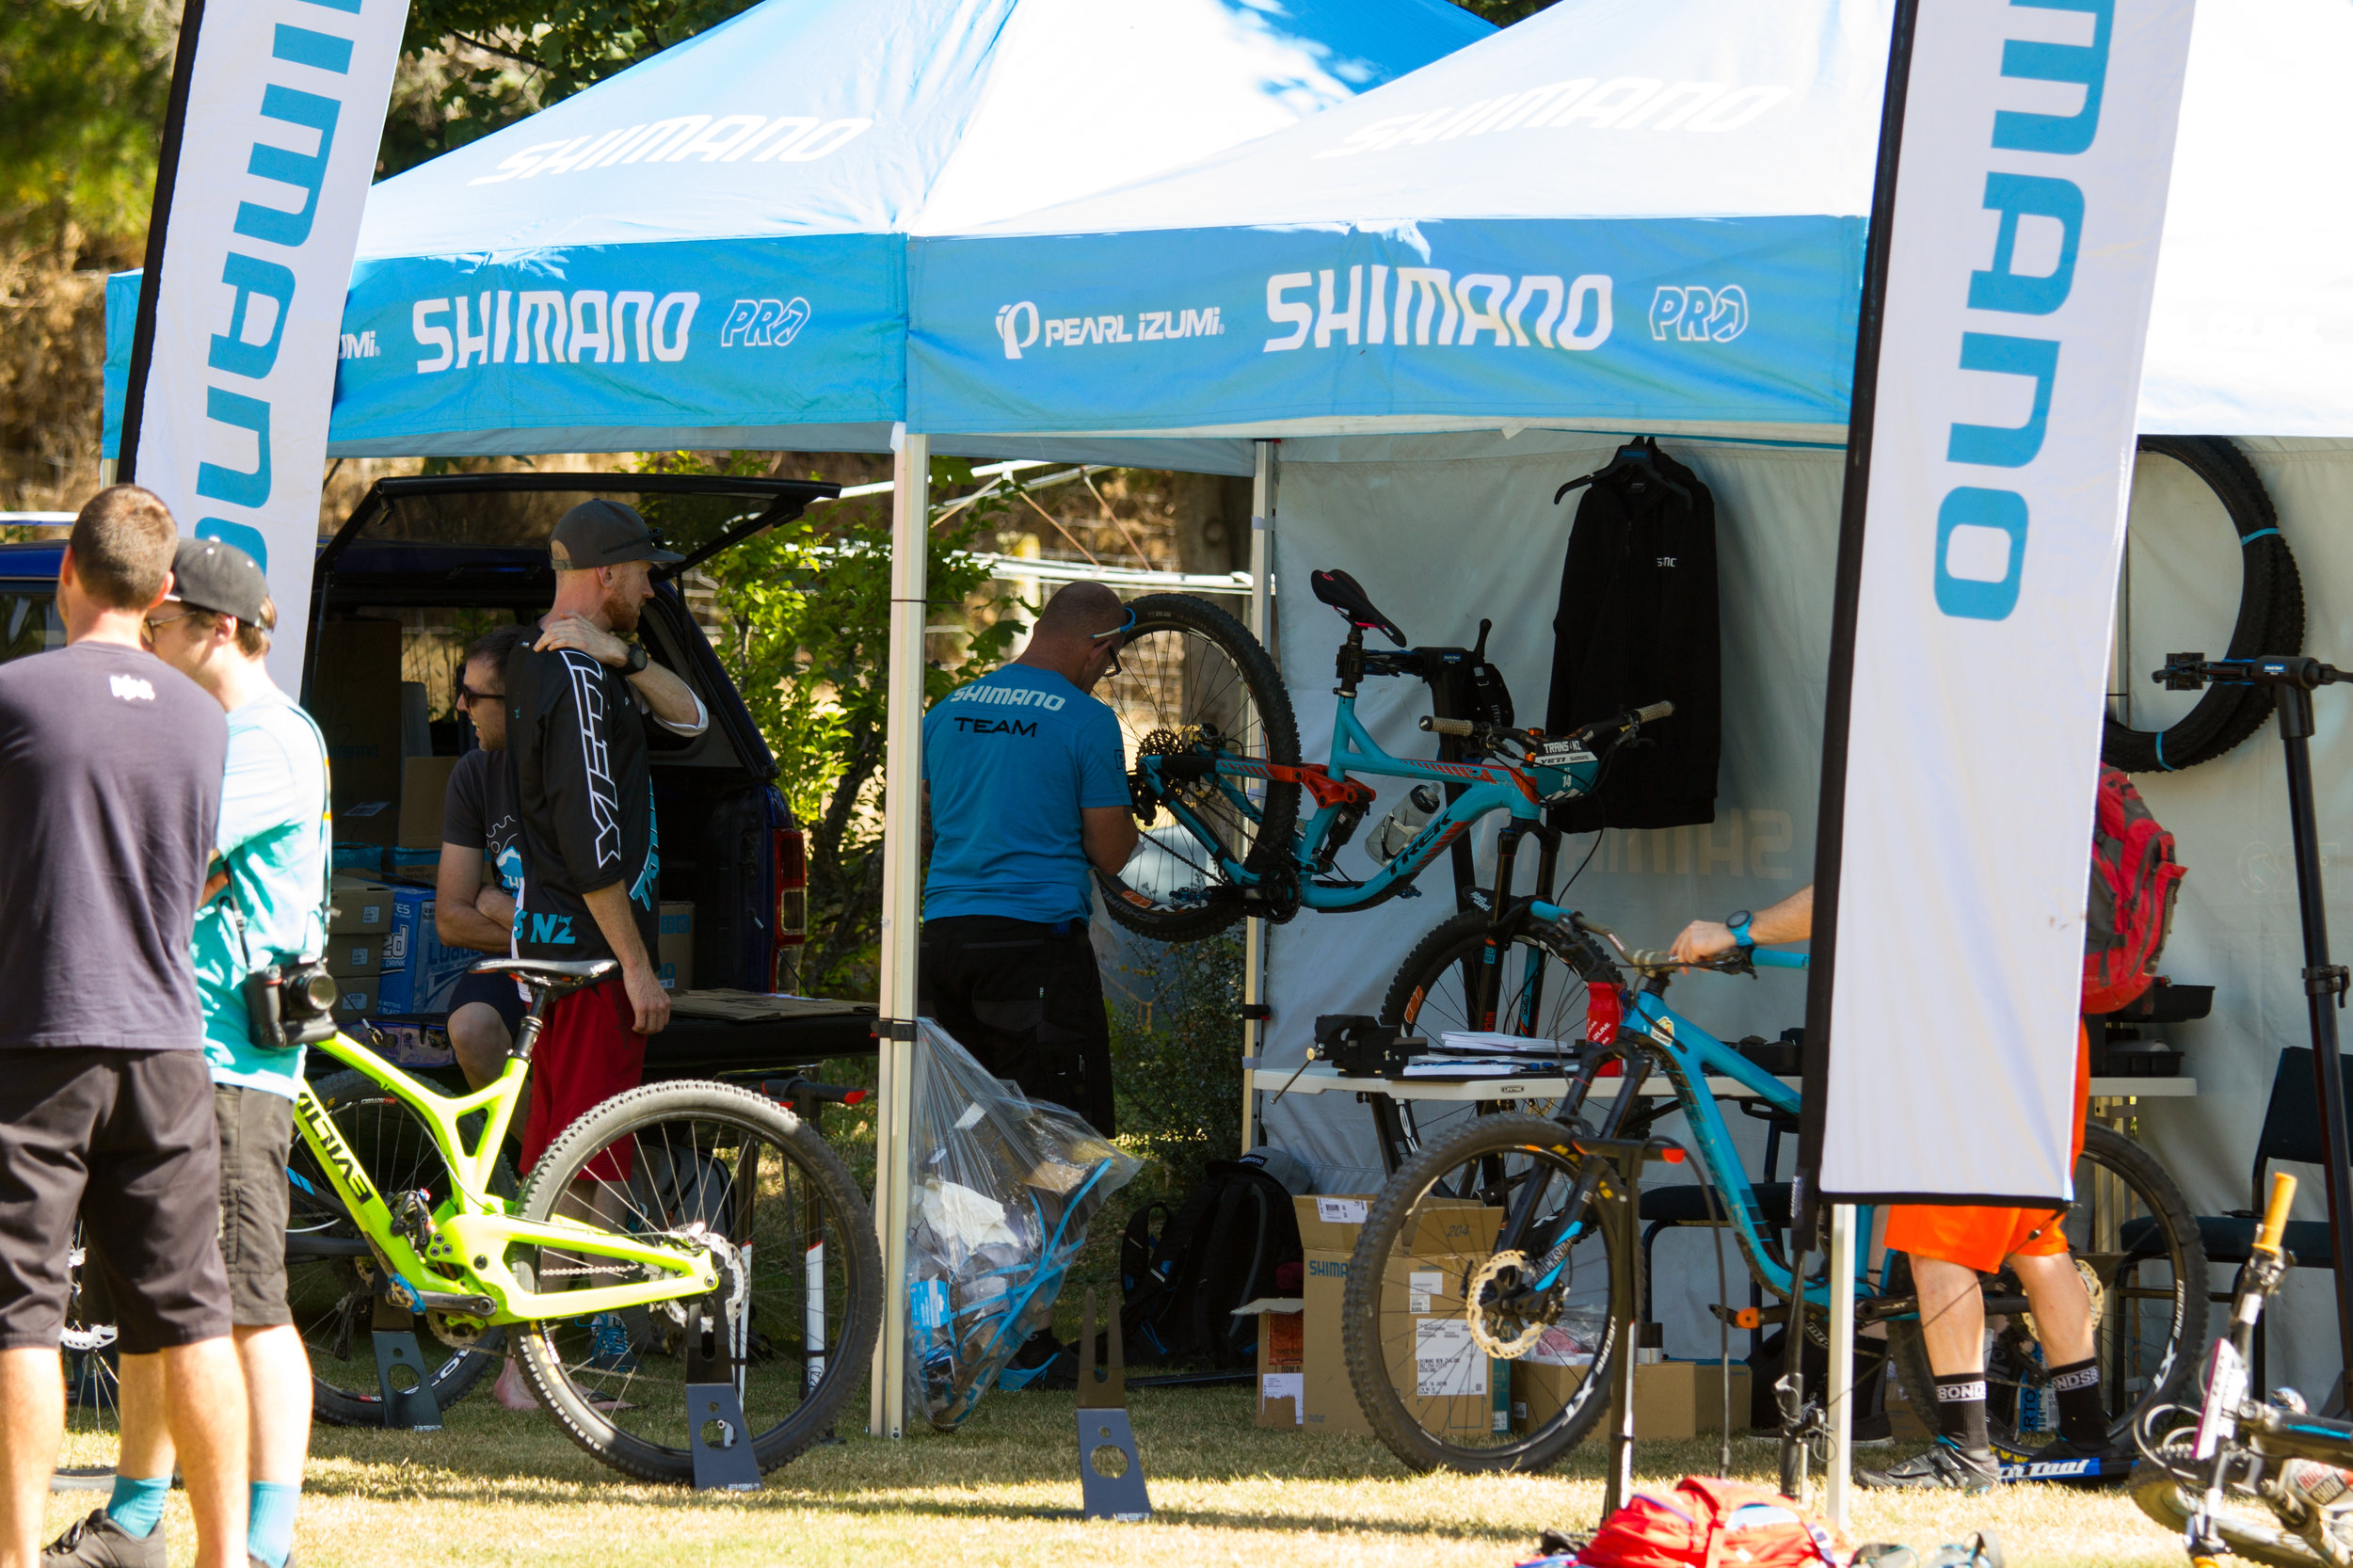 A tent with shiny Shimano things inside......